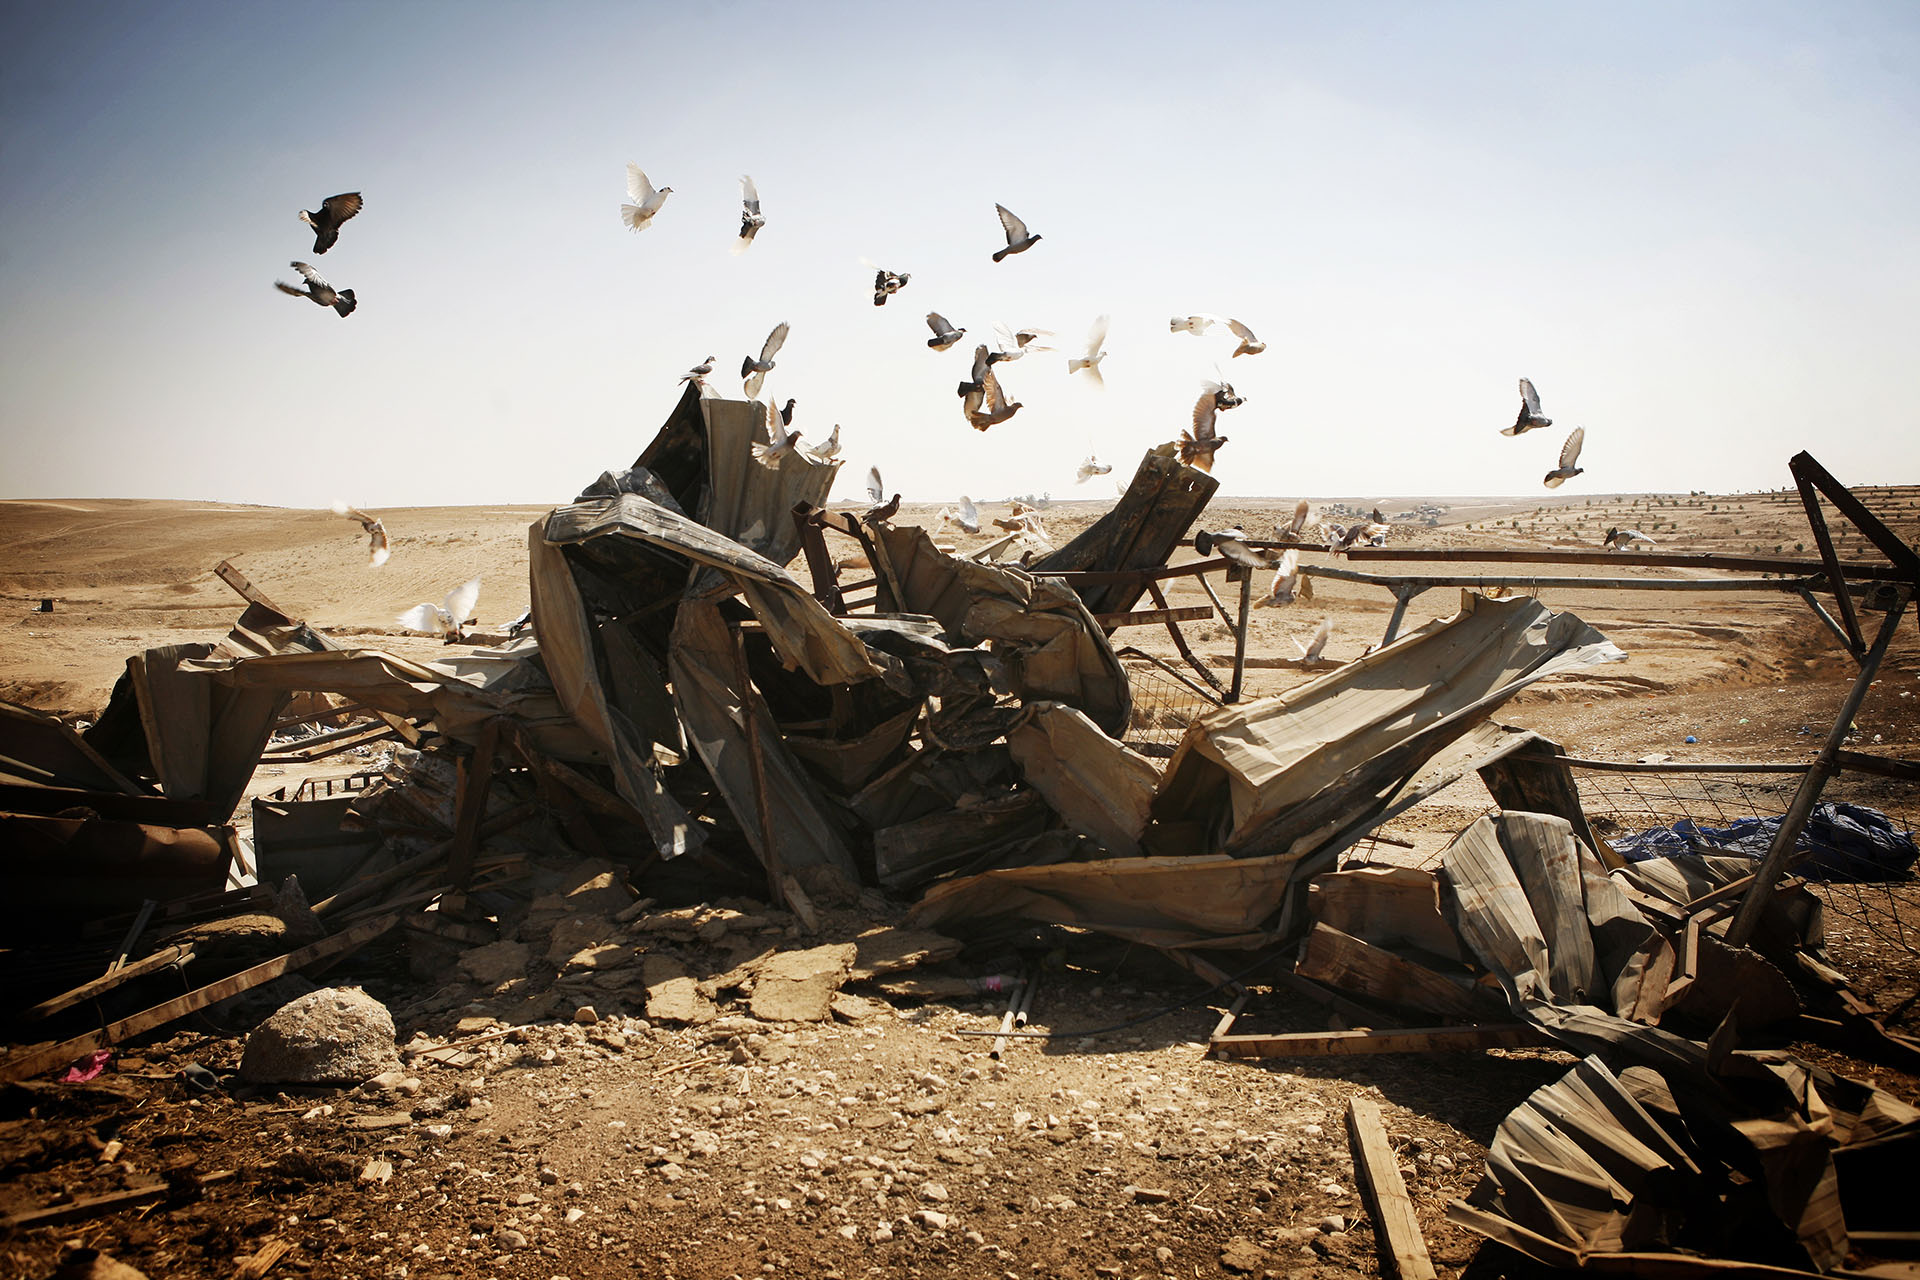 Rubble left in Al Araqib after a demolition. Later that year, the state passed a law stating that the expense of the demolition should be covered by the people whose home is being demolished. In other villages, this has led to a number of families demolishing their own homes. September 2010